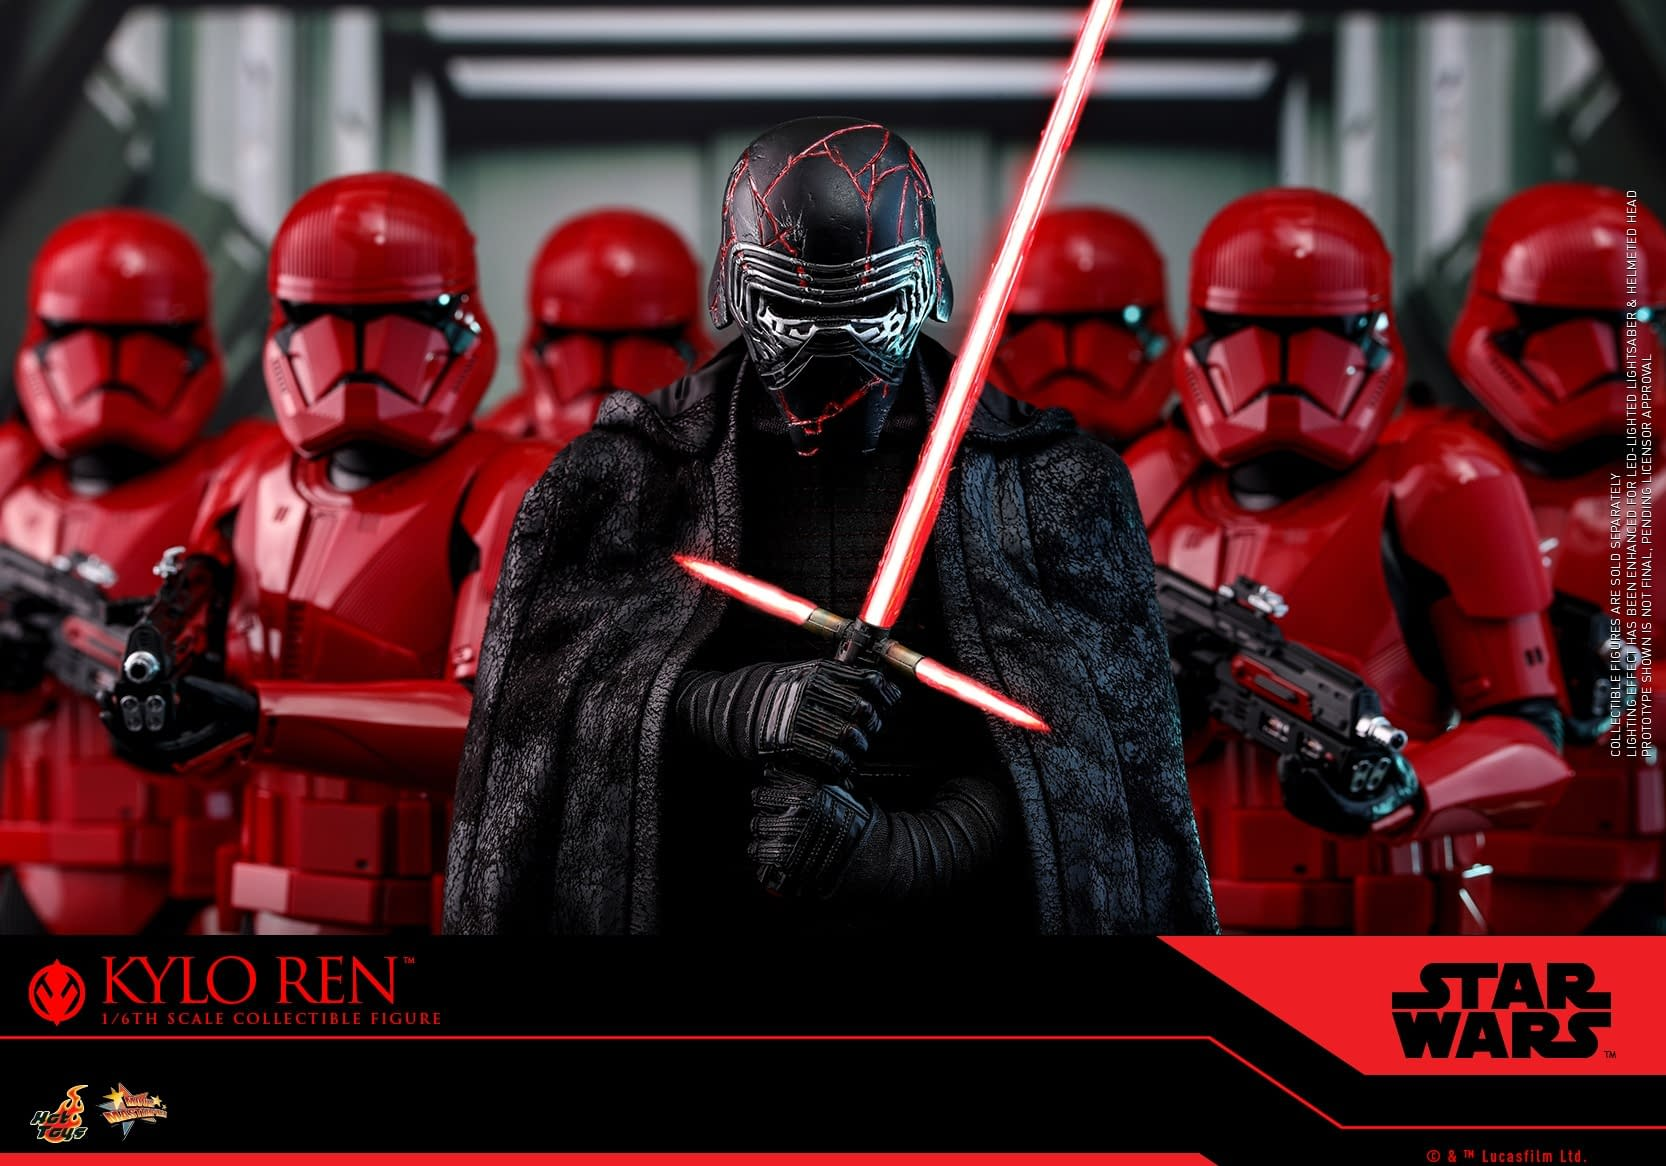 Kylo Ren Prepares for the Rise of Skywalker with Hot Toys